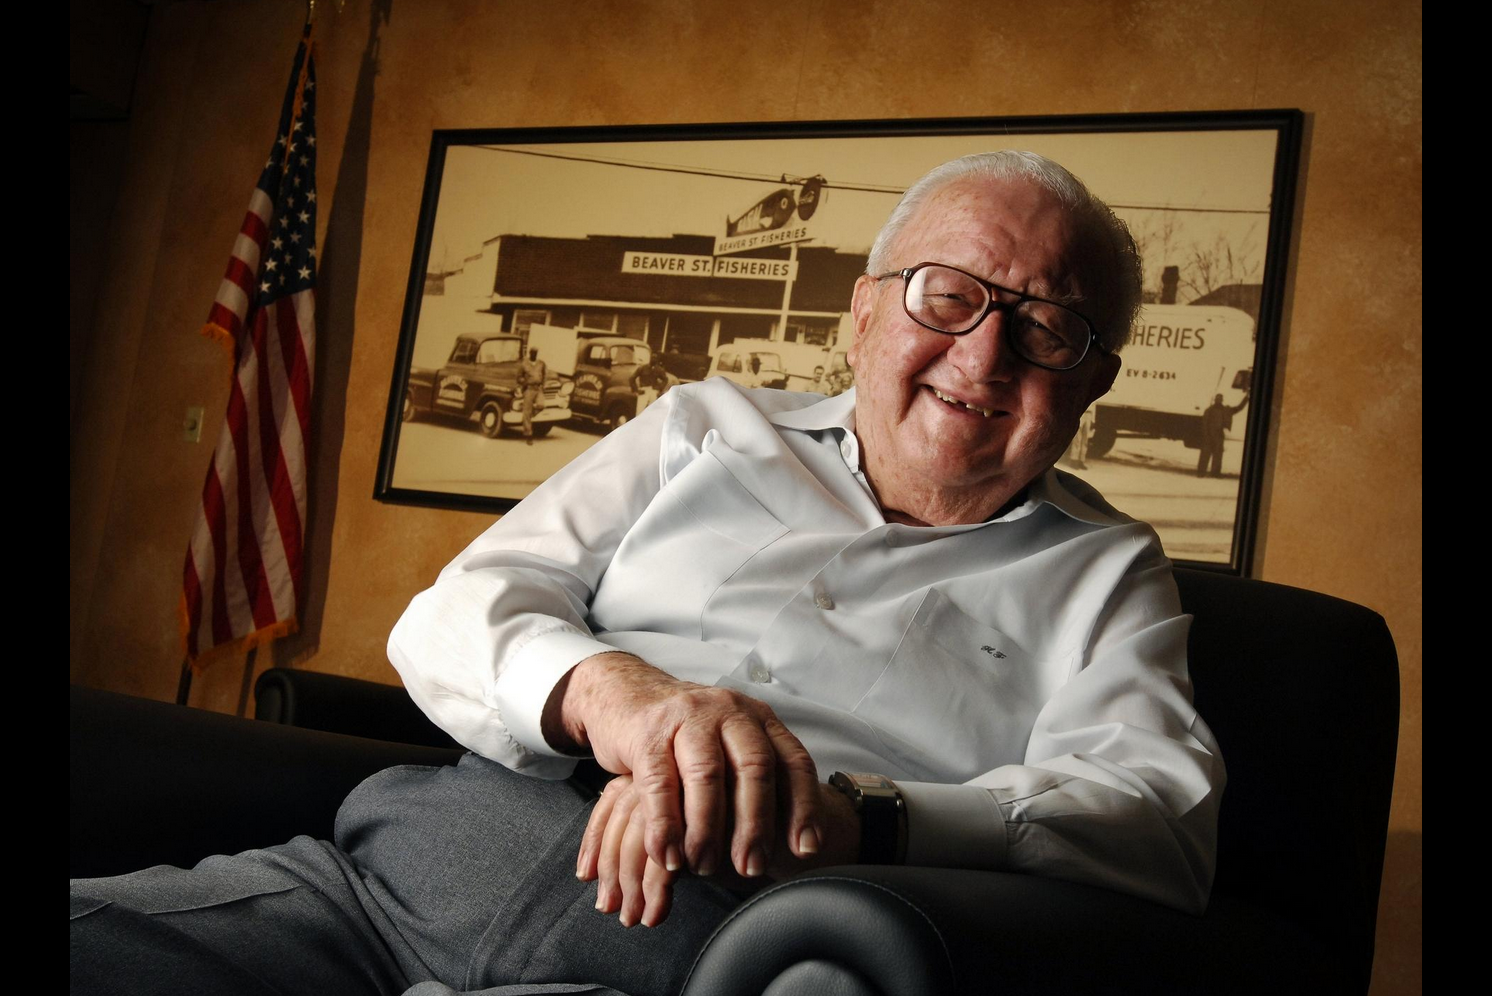 Florida Times-Union story by Sandy Stickland recognizing Holocaust survivor Harry Frisch as he prepares to receive a REA USA award at citywide Peace/Unity luncheon - 9/30/19